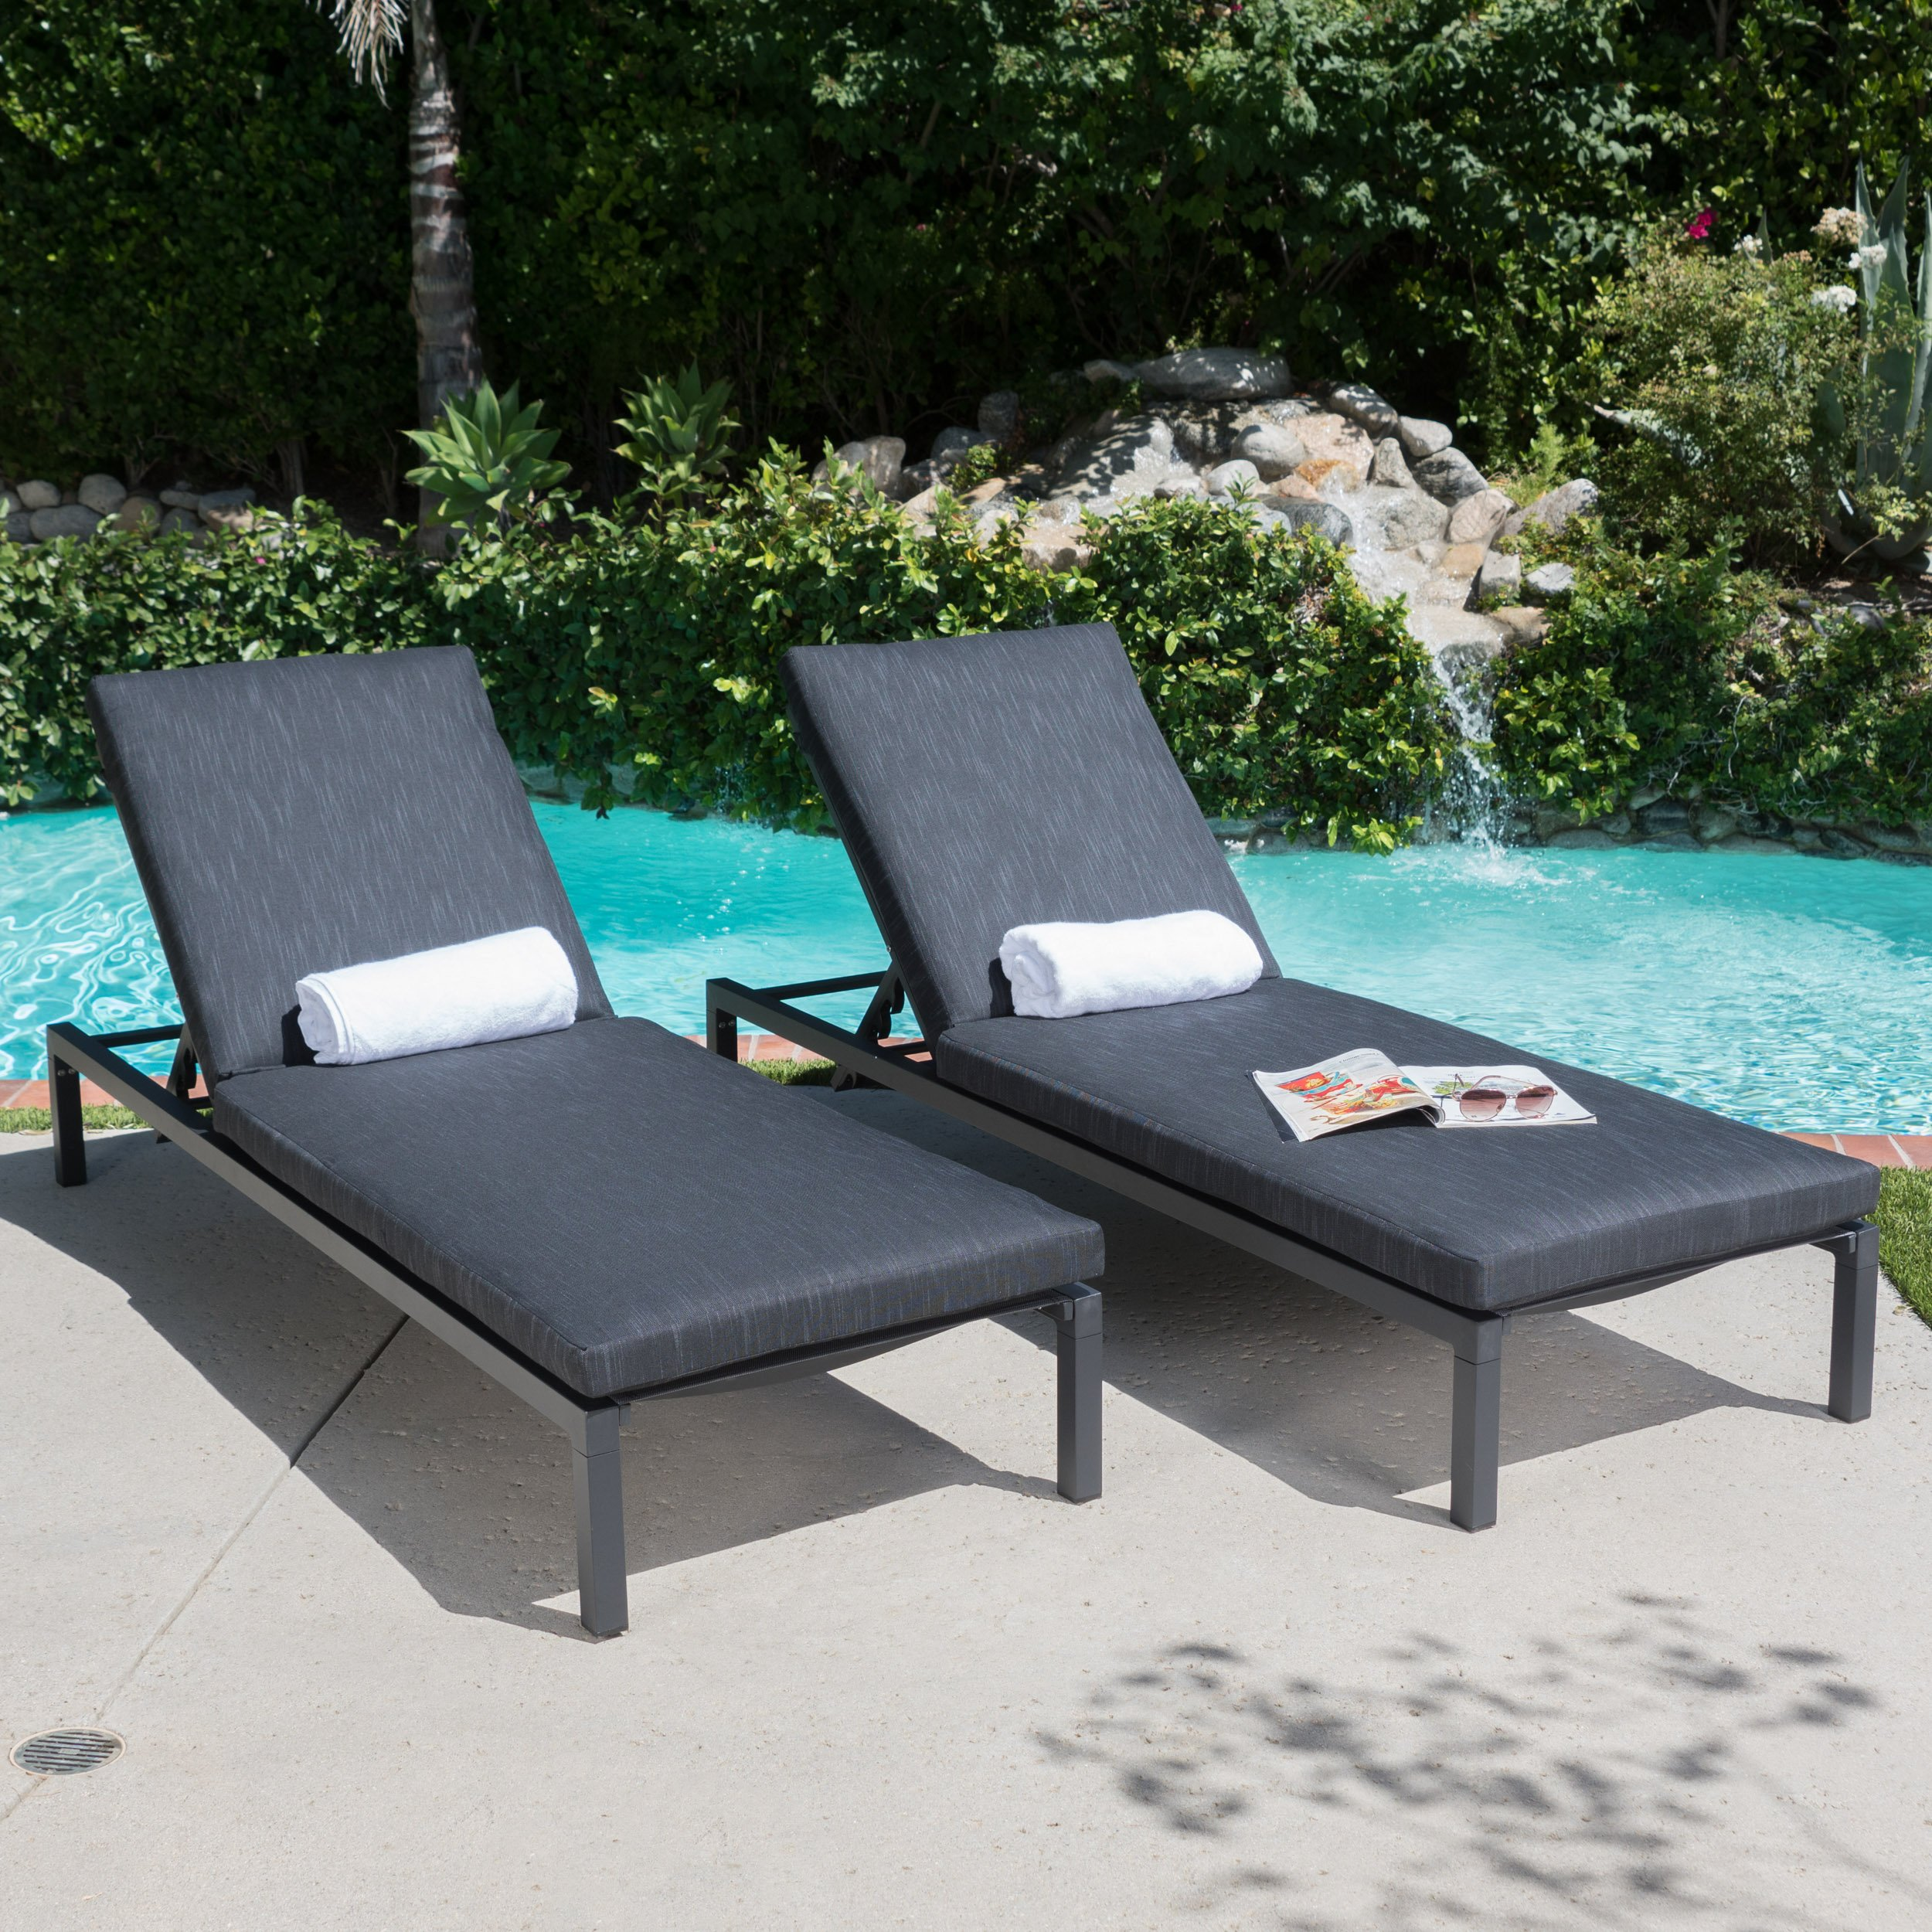 Great Deal Furniture Nealie Outdoor Mesh Black Aluminum Frame Chaise Lounge w/Water Resistant Cushion (Set of 2) by Great Deal Furniture